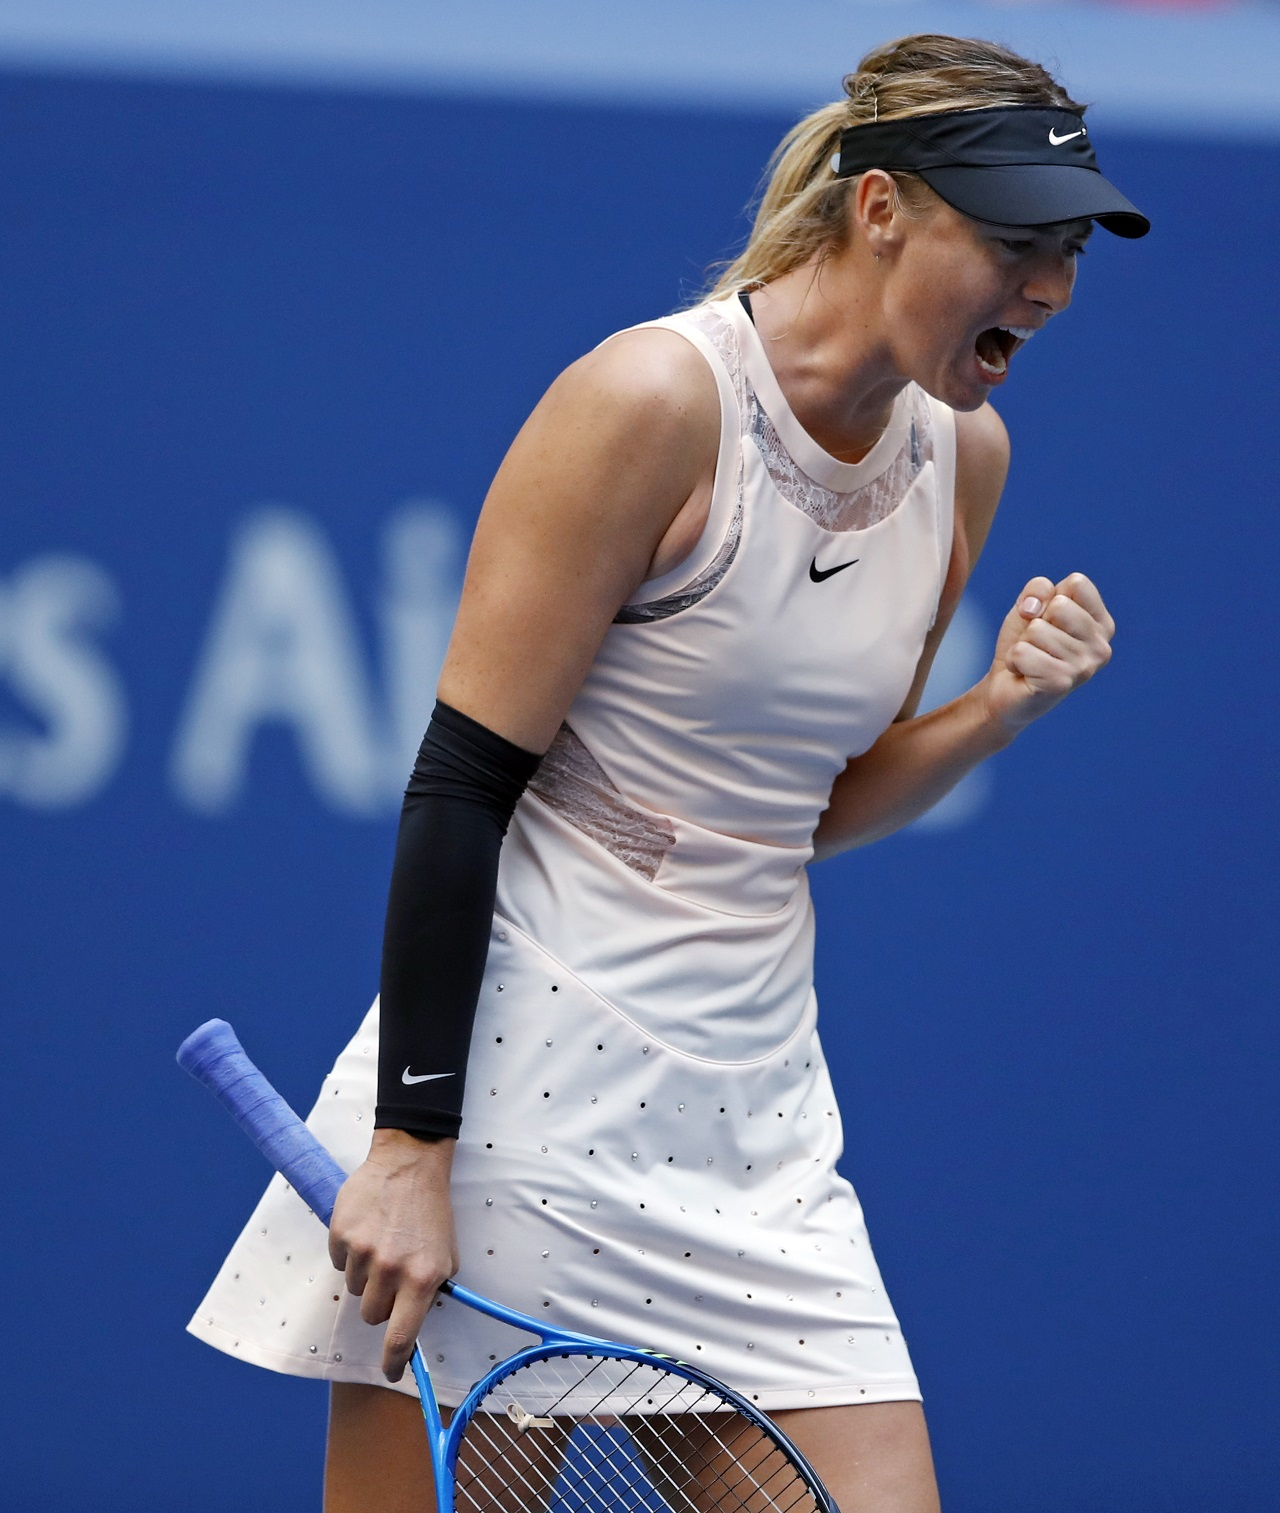 Maria Sharapova, of Russia, reacts after scoring a point against Timea Babos, of Hungary, during the second round of the U.S. Open tennis tournament, Wednesday, Aug. 30, 2017, in New York